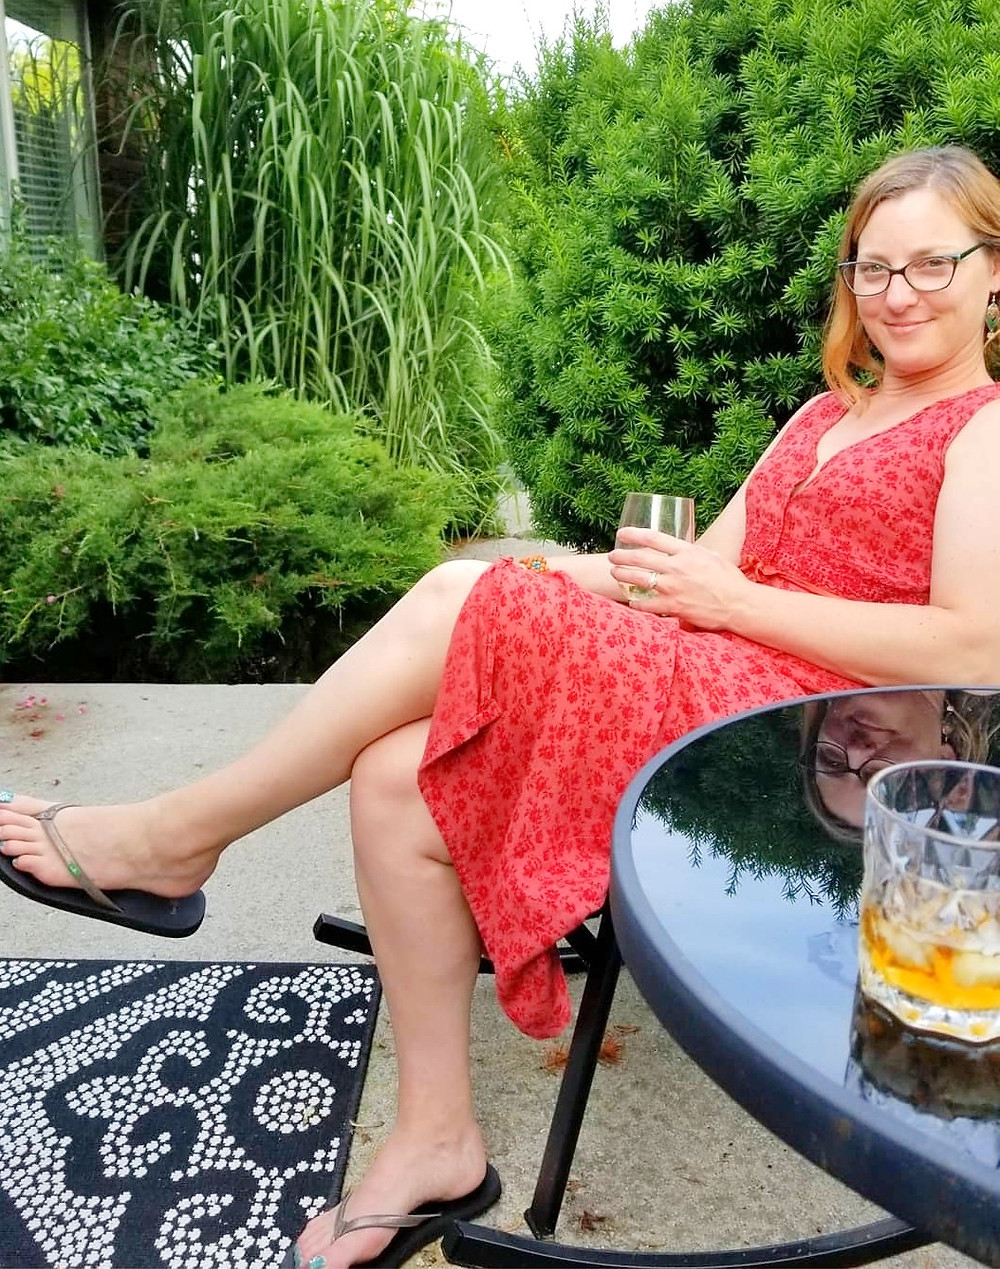 woman on porch wine glass patio life relaxing